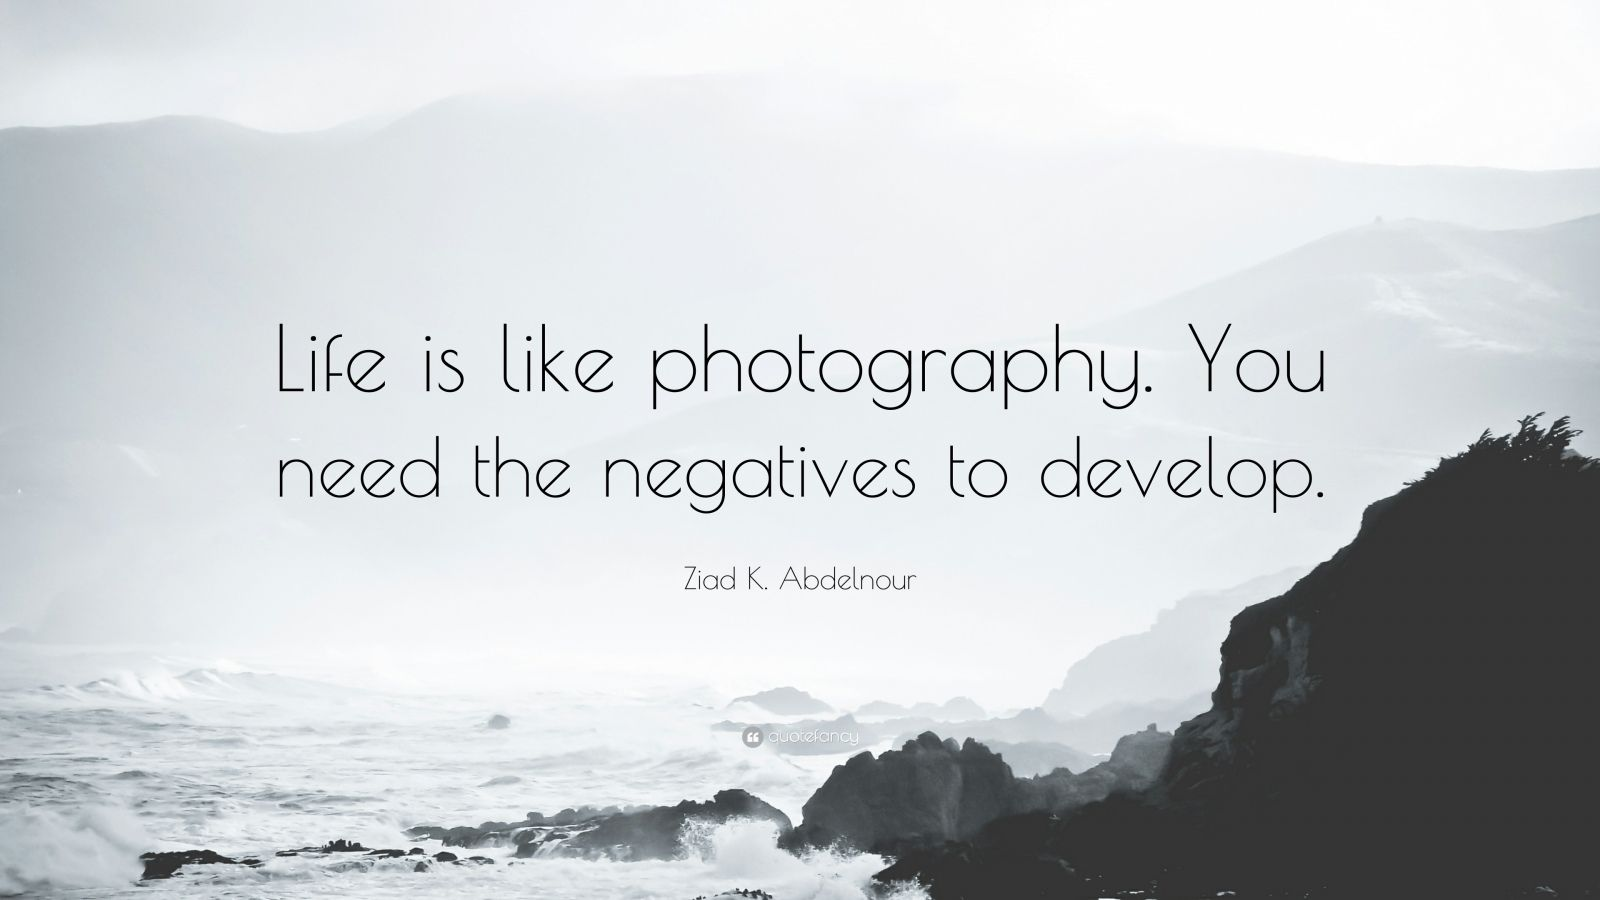 Quotes About Life: Photography Quotes (22 Wallpapers)